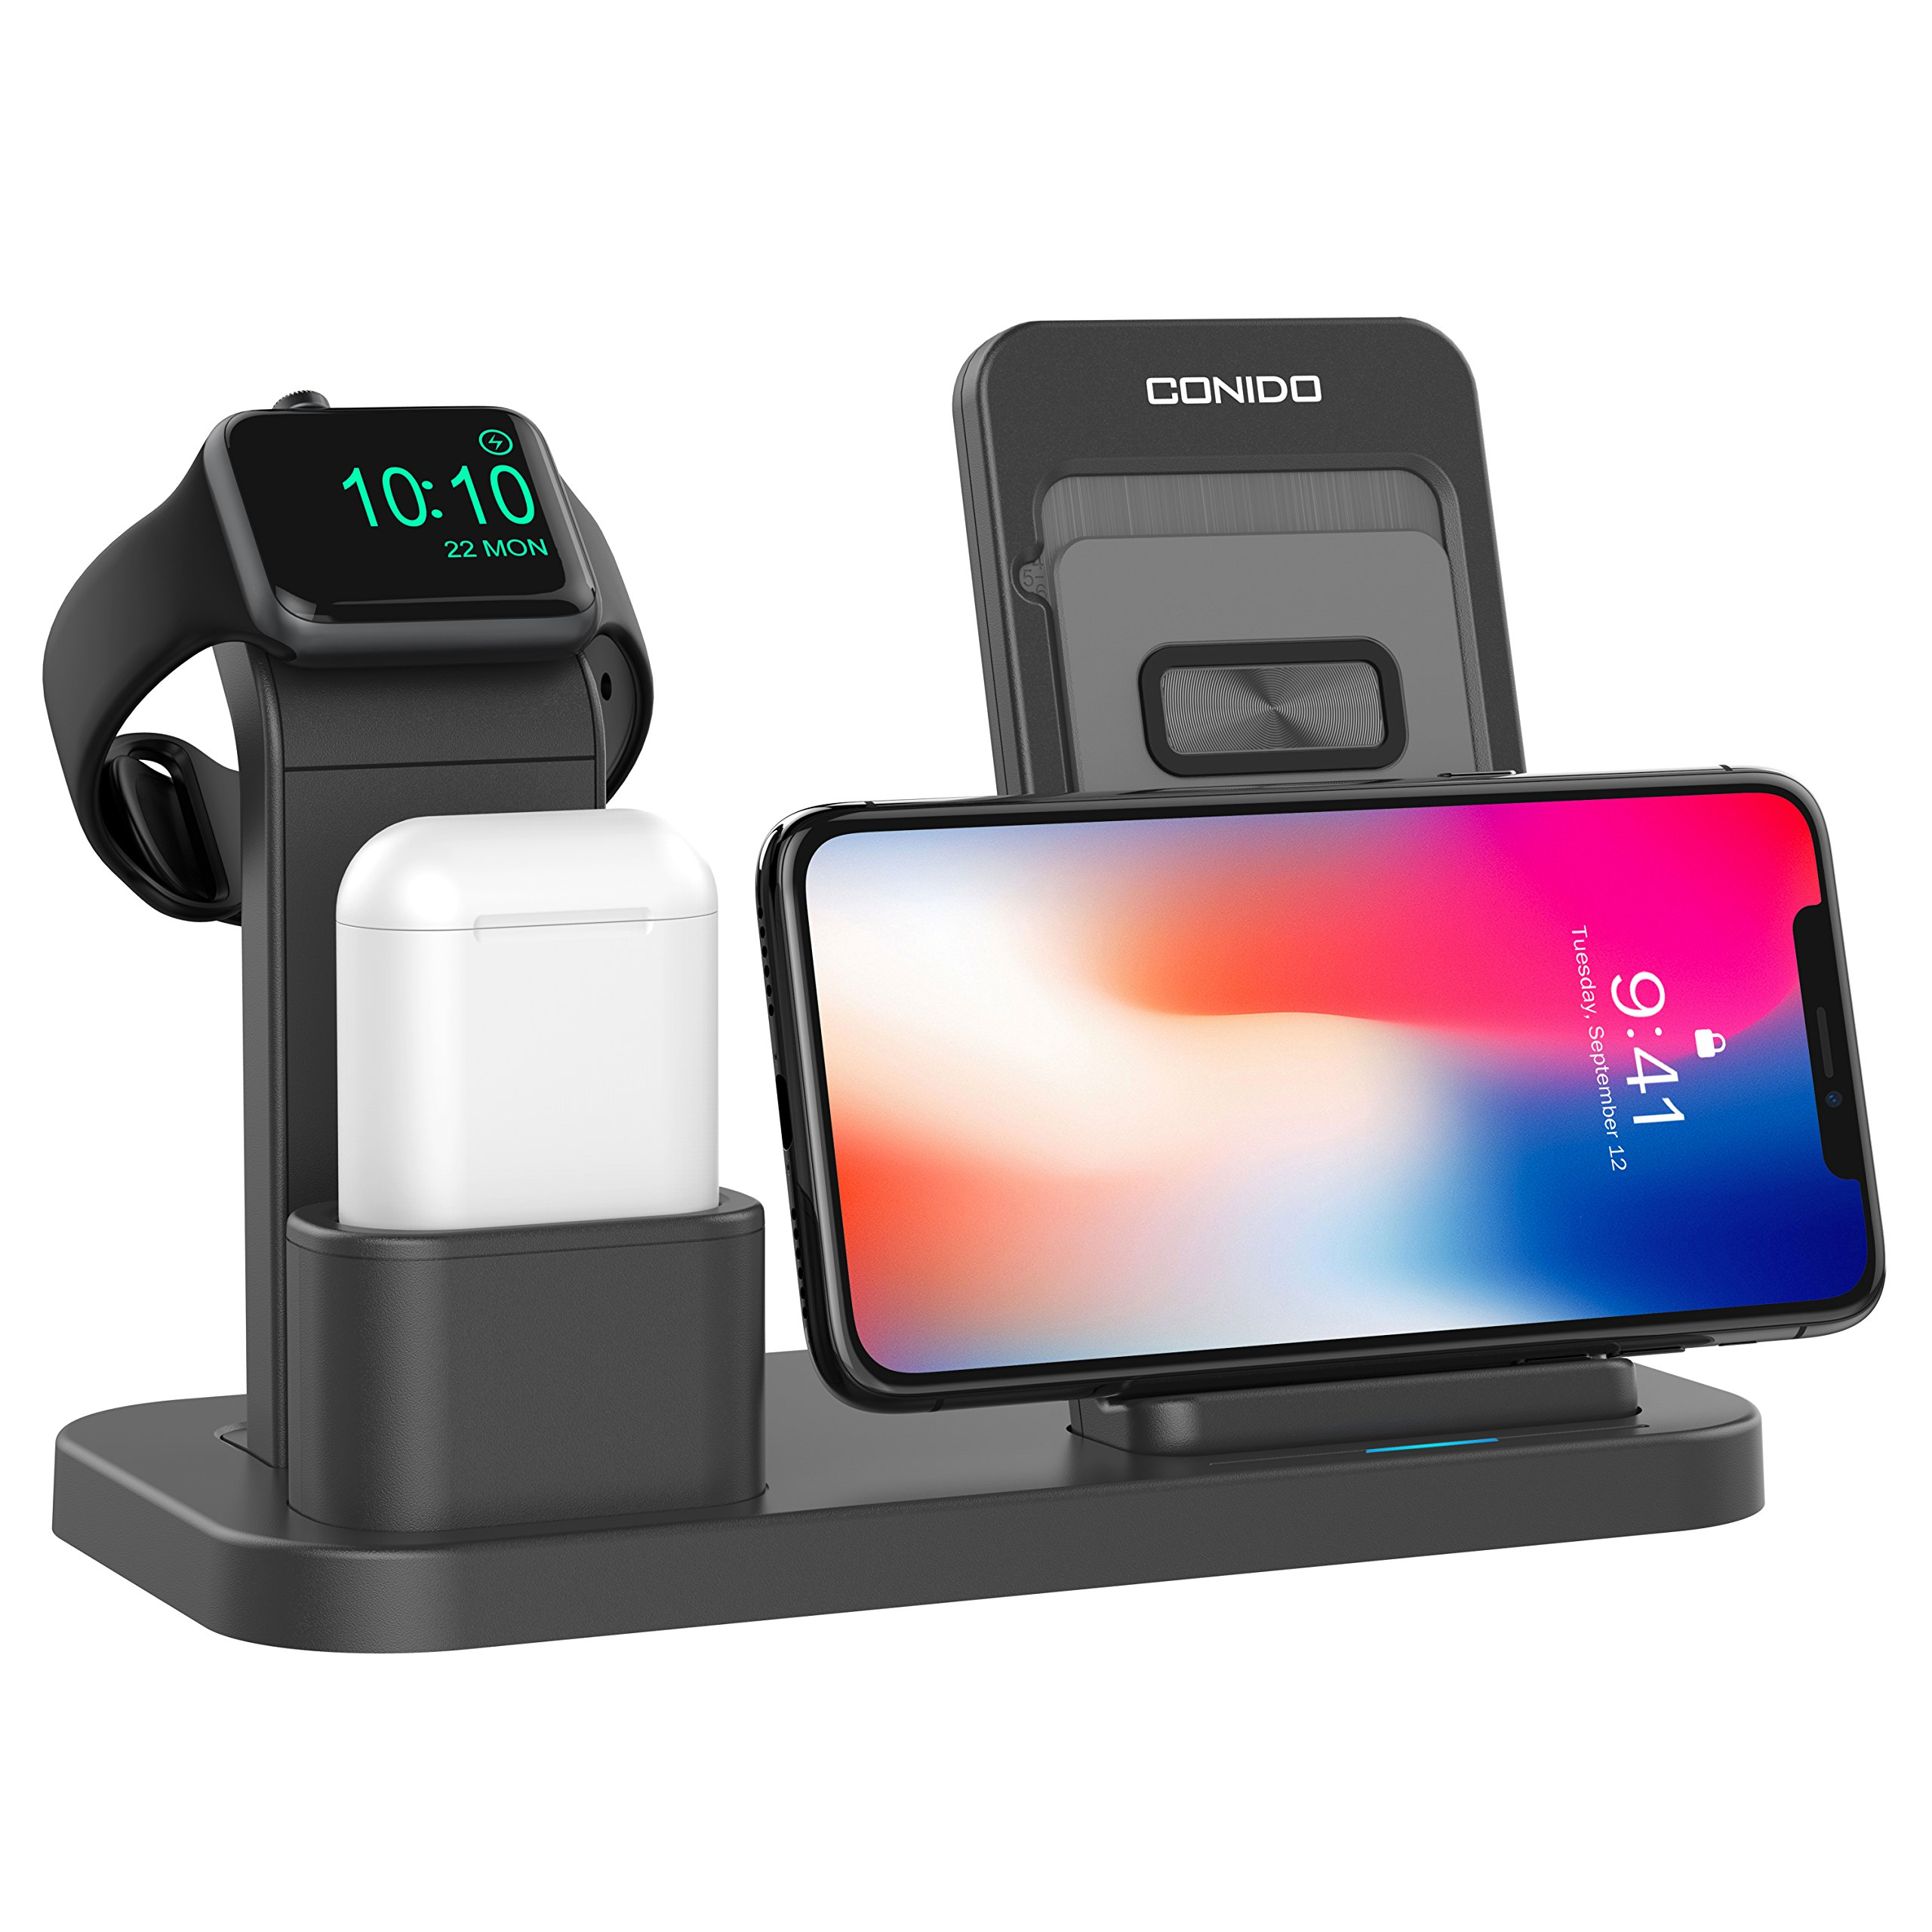 Conido Wireless Charger for iPhone, 3 in 1 Charging Stand for Apple Watch AirPods Charging station stock Holder for iPhone X/8 Plus/8 AirPods/Apple Watch Series 3/2/1 (Black)